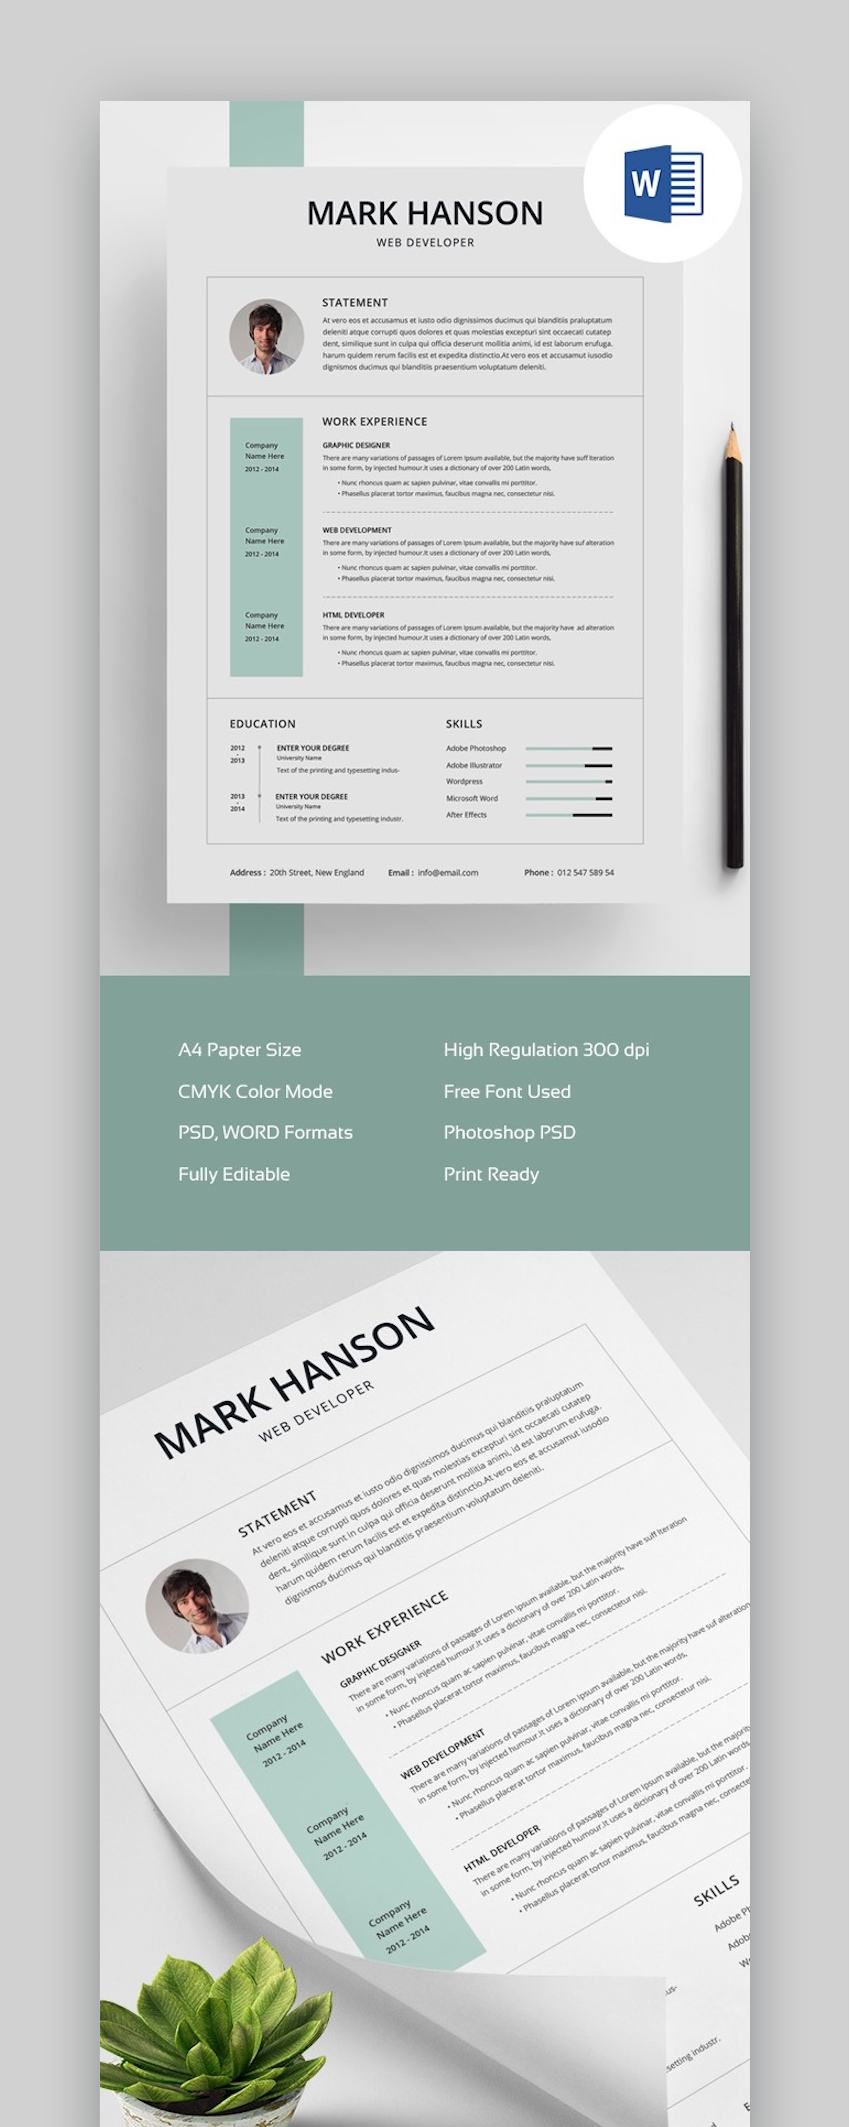 free creative resume templates word downloads for eye catching env clean template final Resume Eye Catching Resume Templates Free